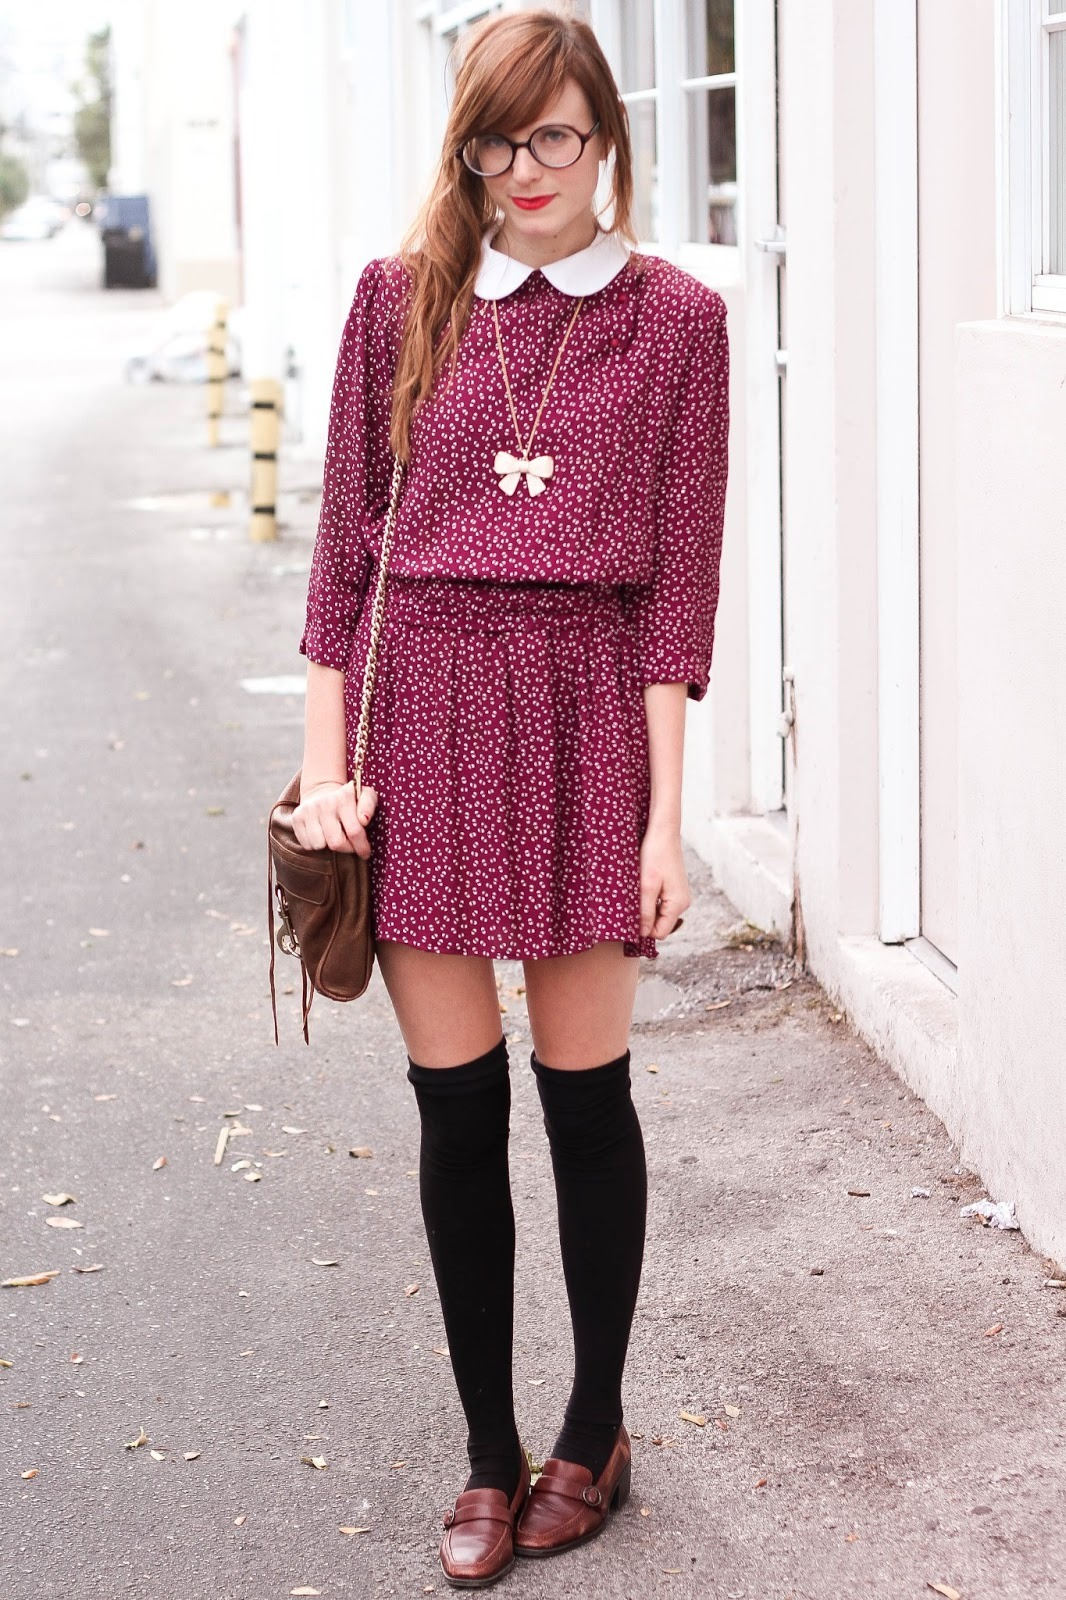 Black thigh high socks with brown shoes and vintage burgundy dress